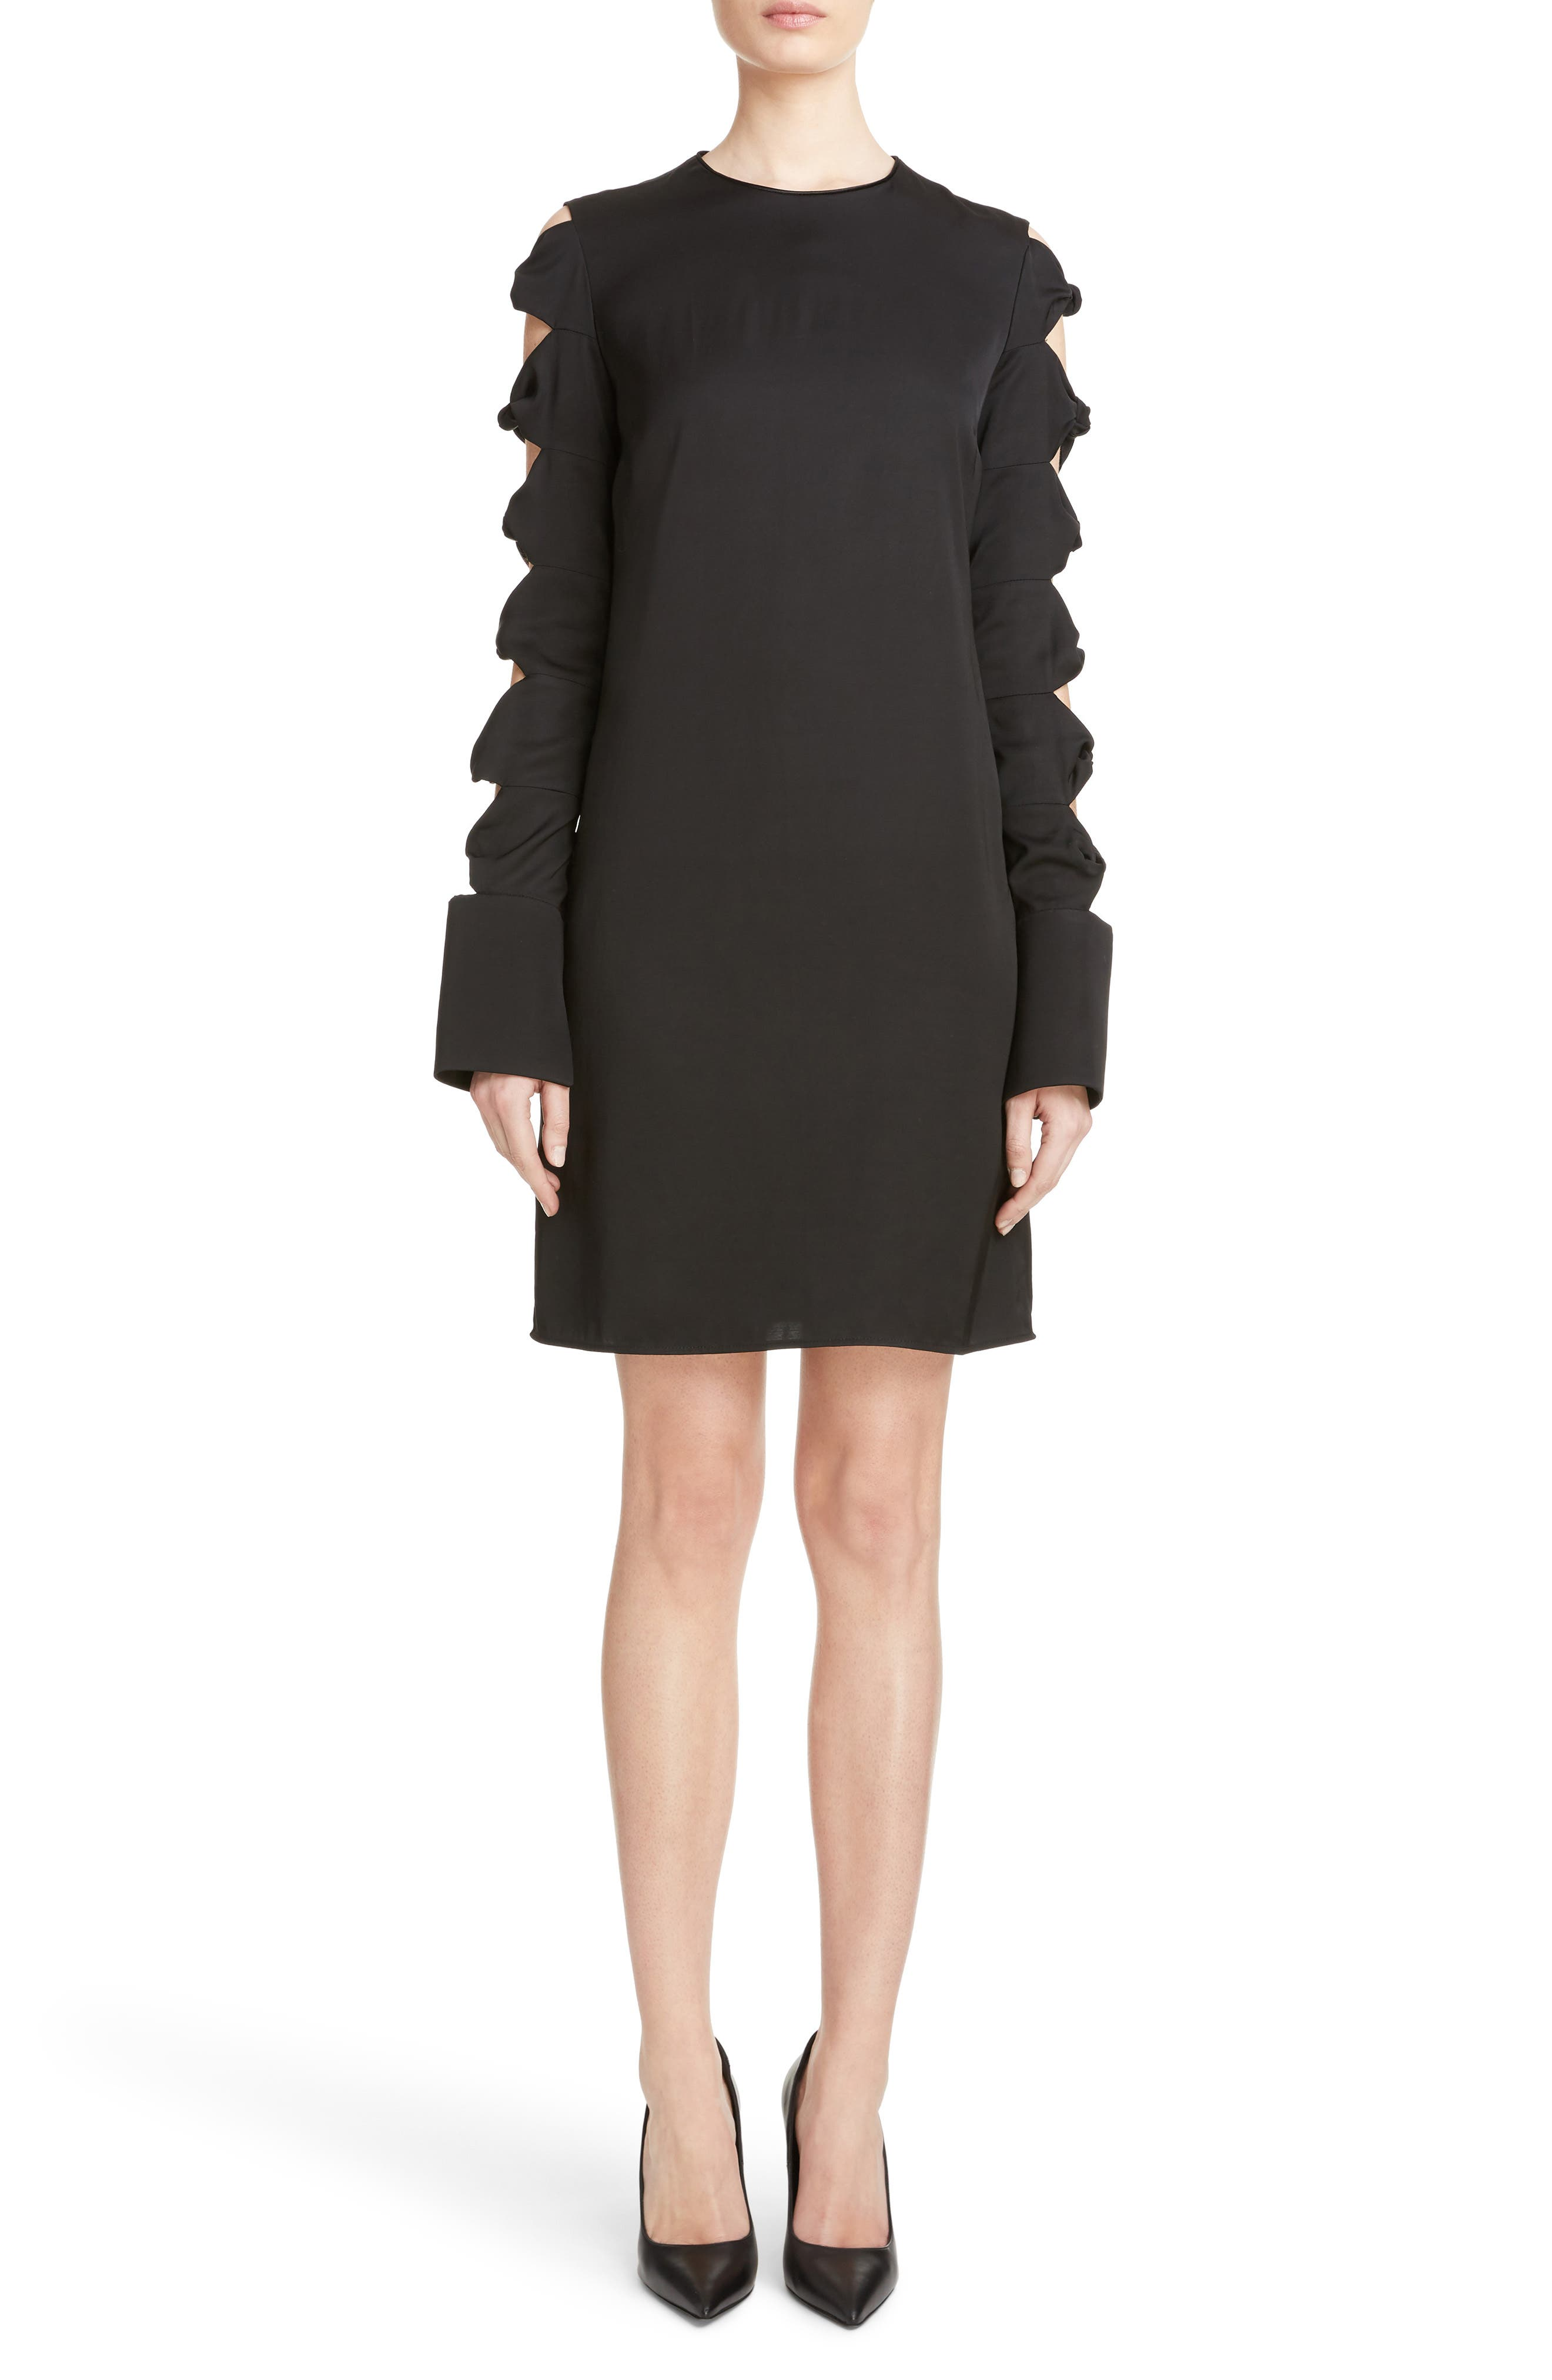 Victoria, Victoria Beckham Knotted Sleeve Dress